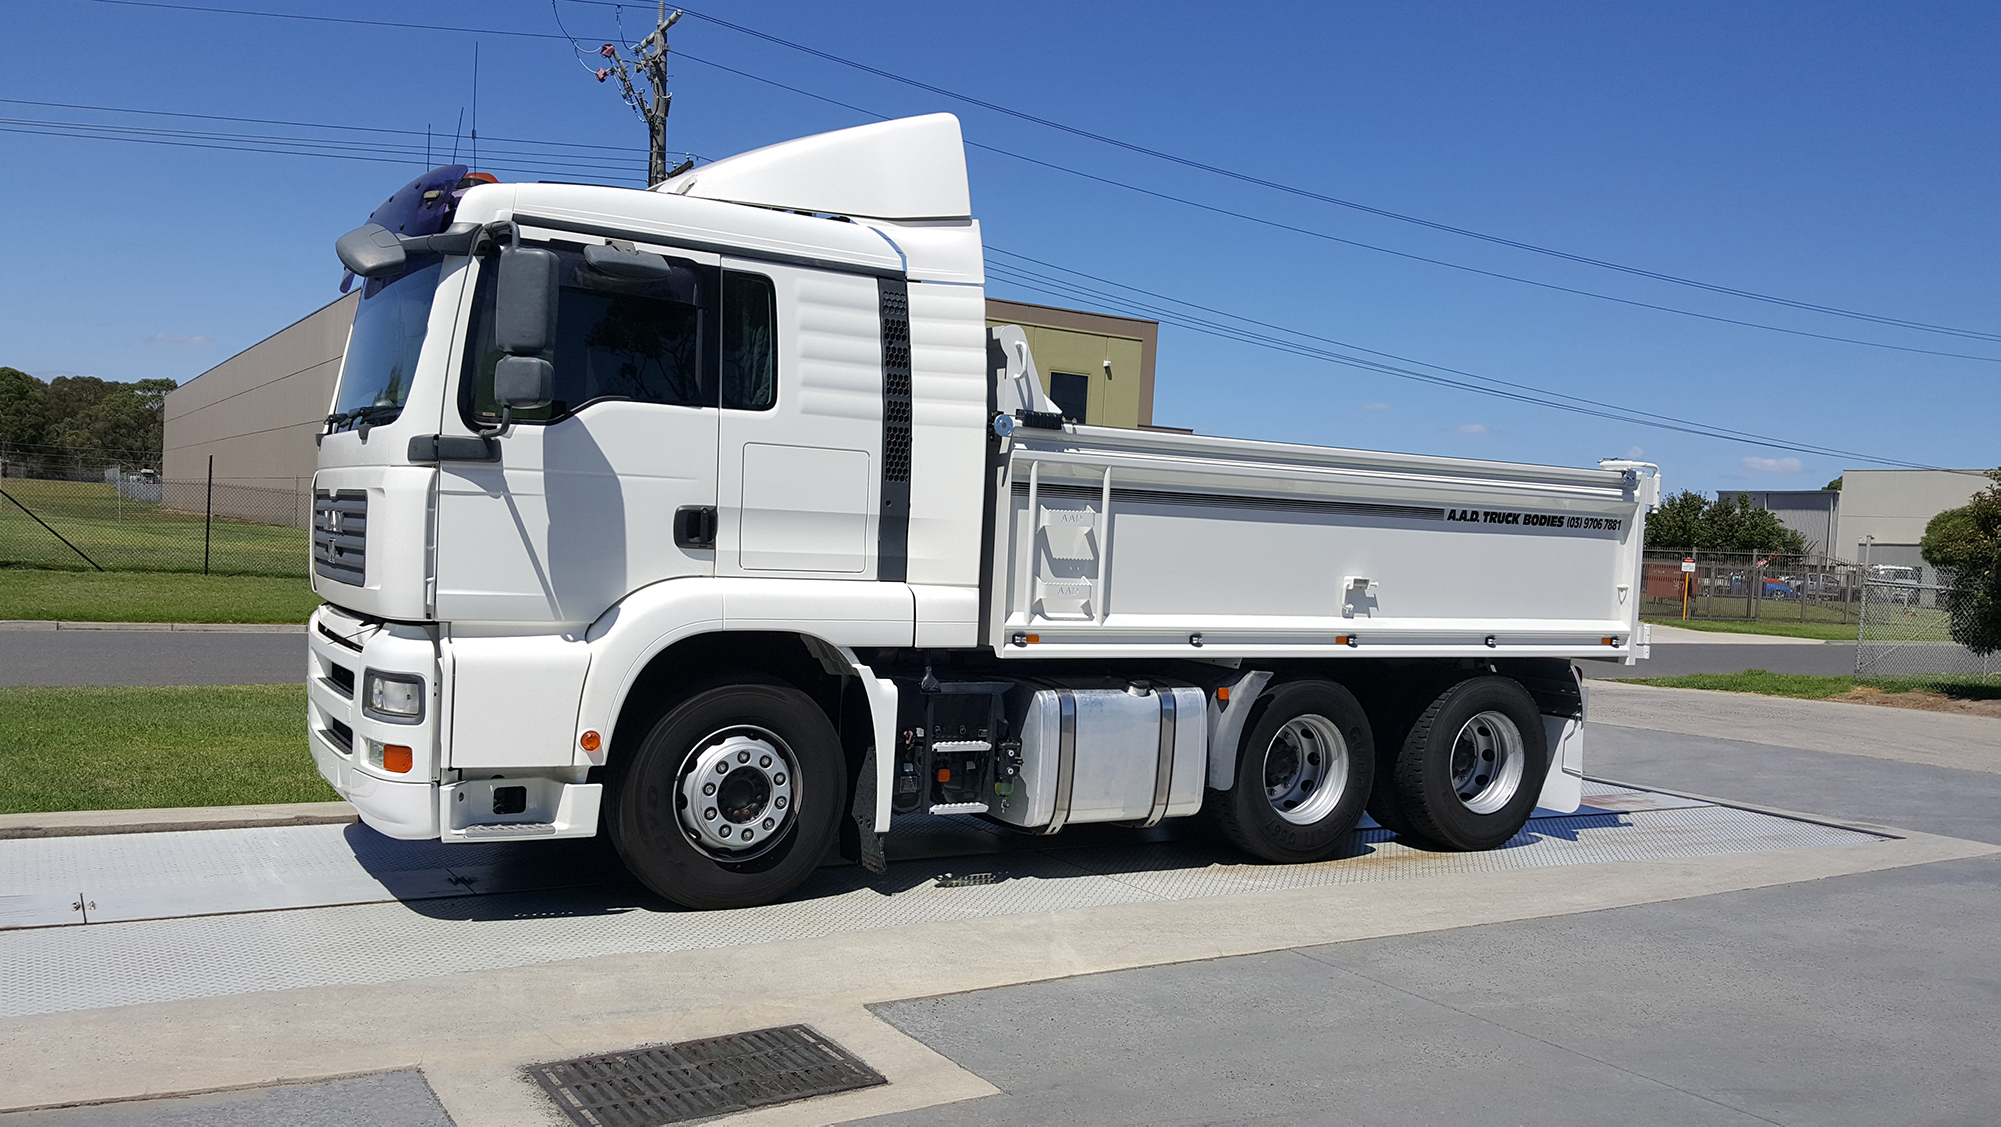 Tipper Truck Bodies   tipper truck body, tipper body, dump truck, dump truck body